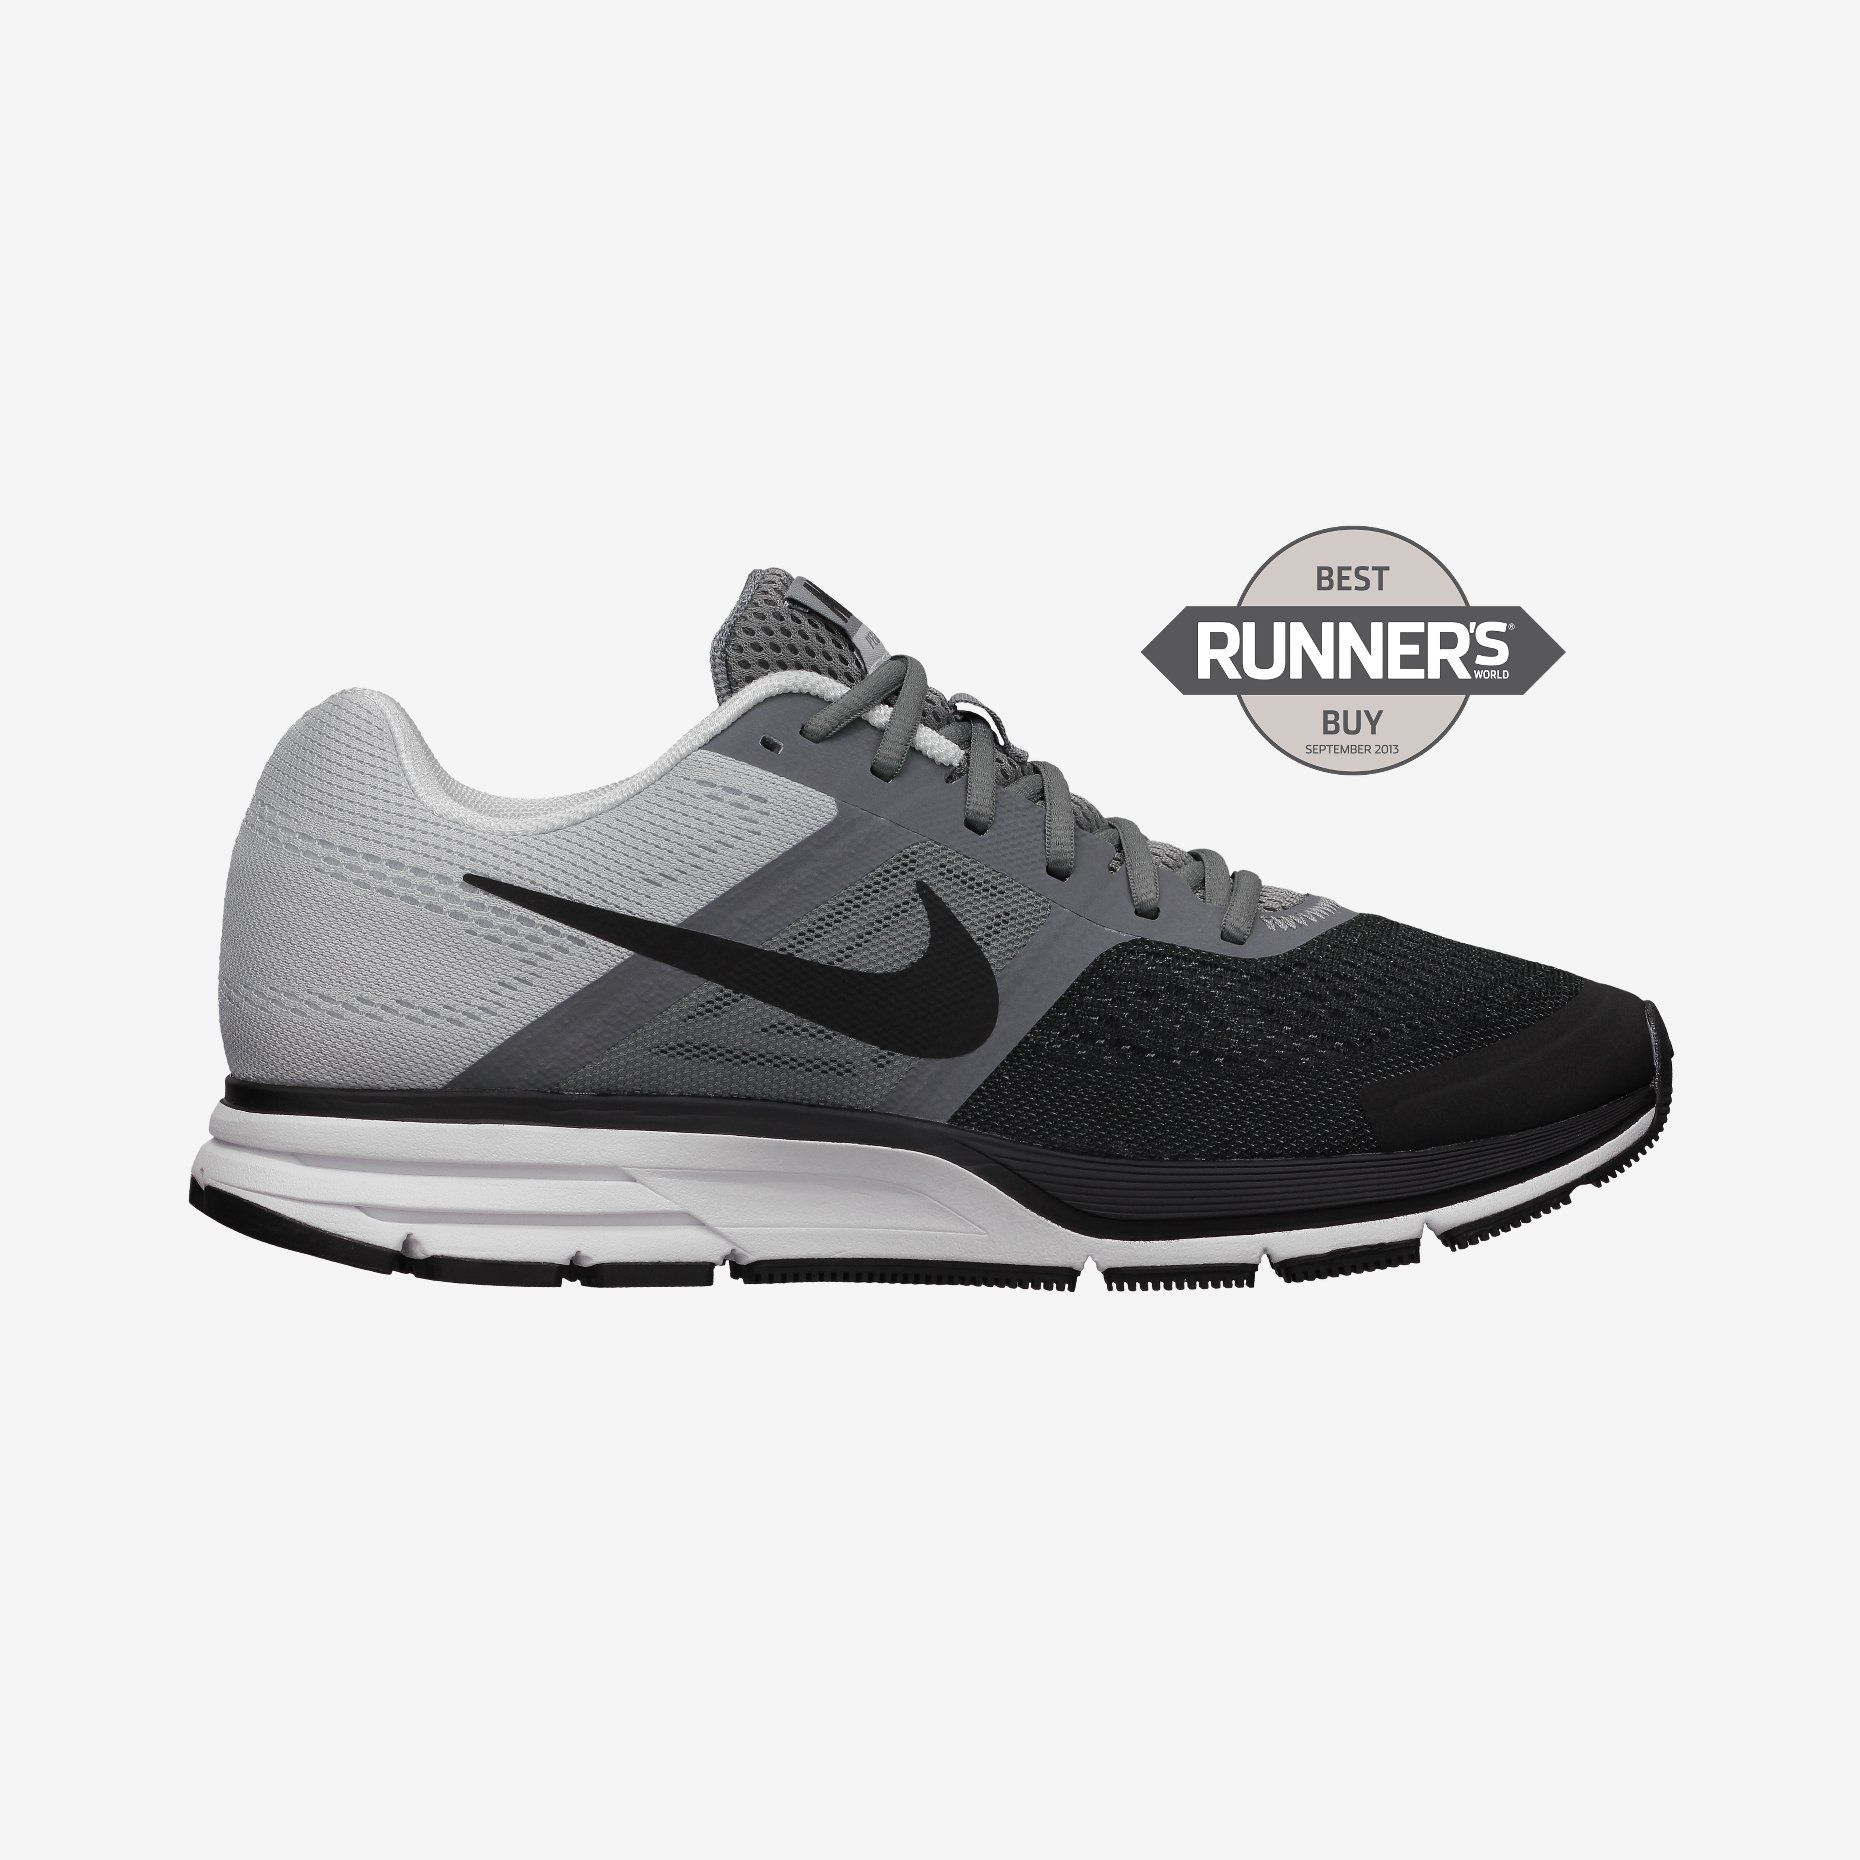 d4fad8bd52e Nike Store. Nike Air Pegasus 30 Men s Running Shoe